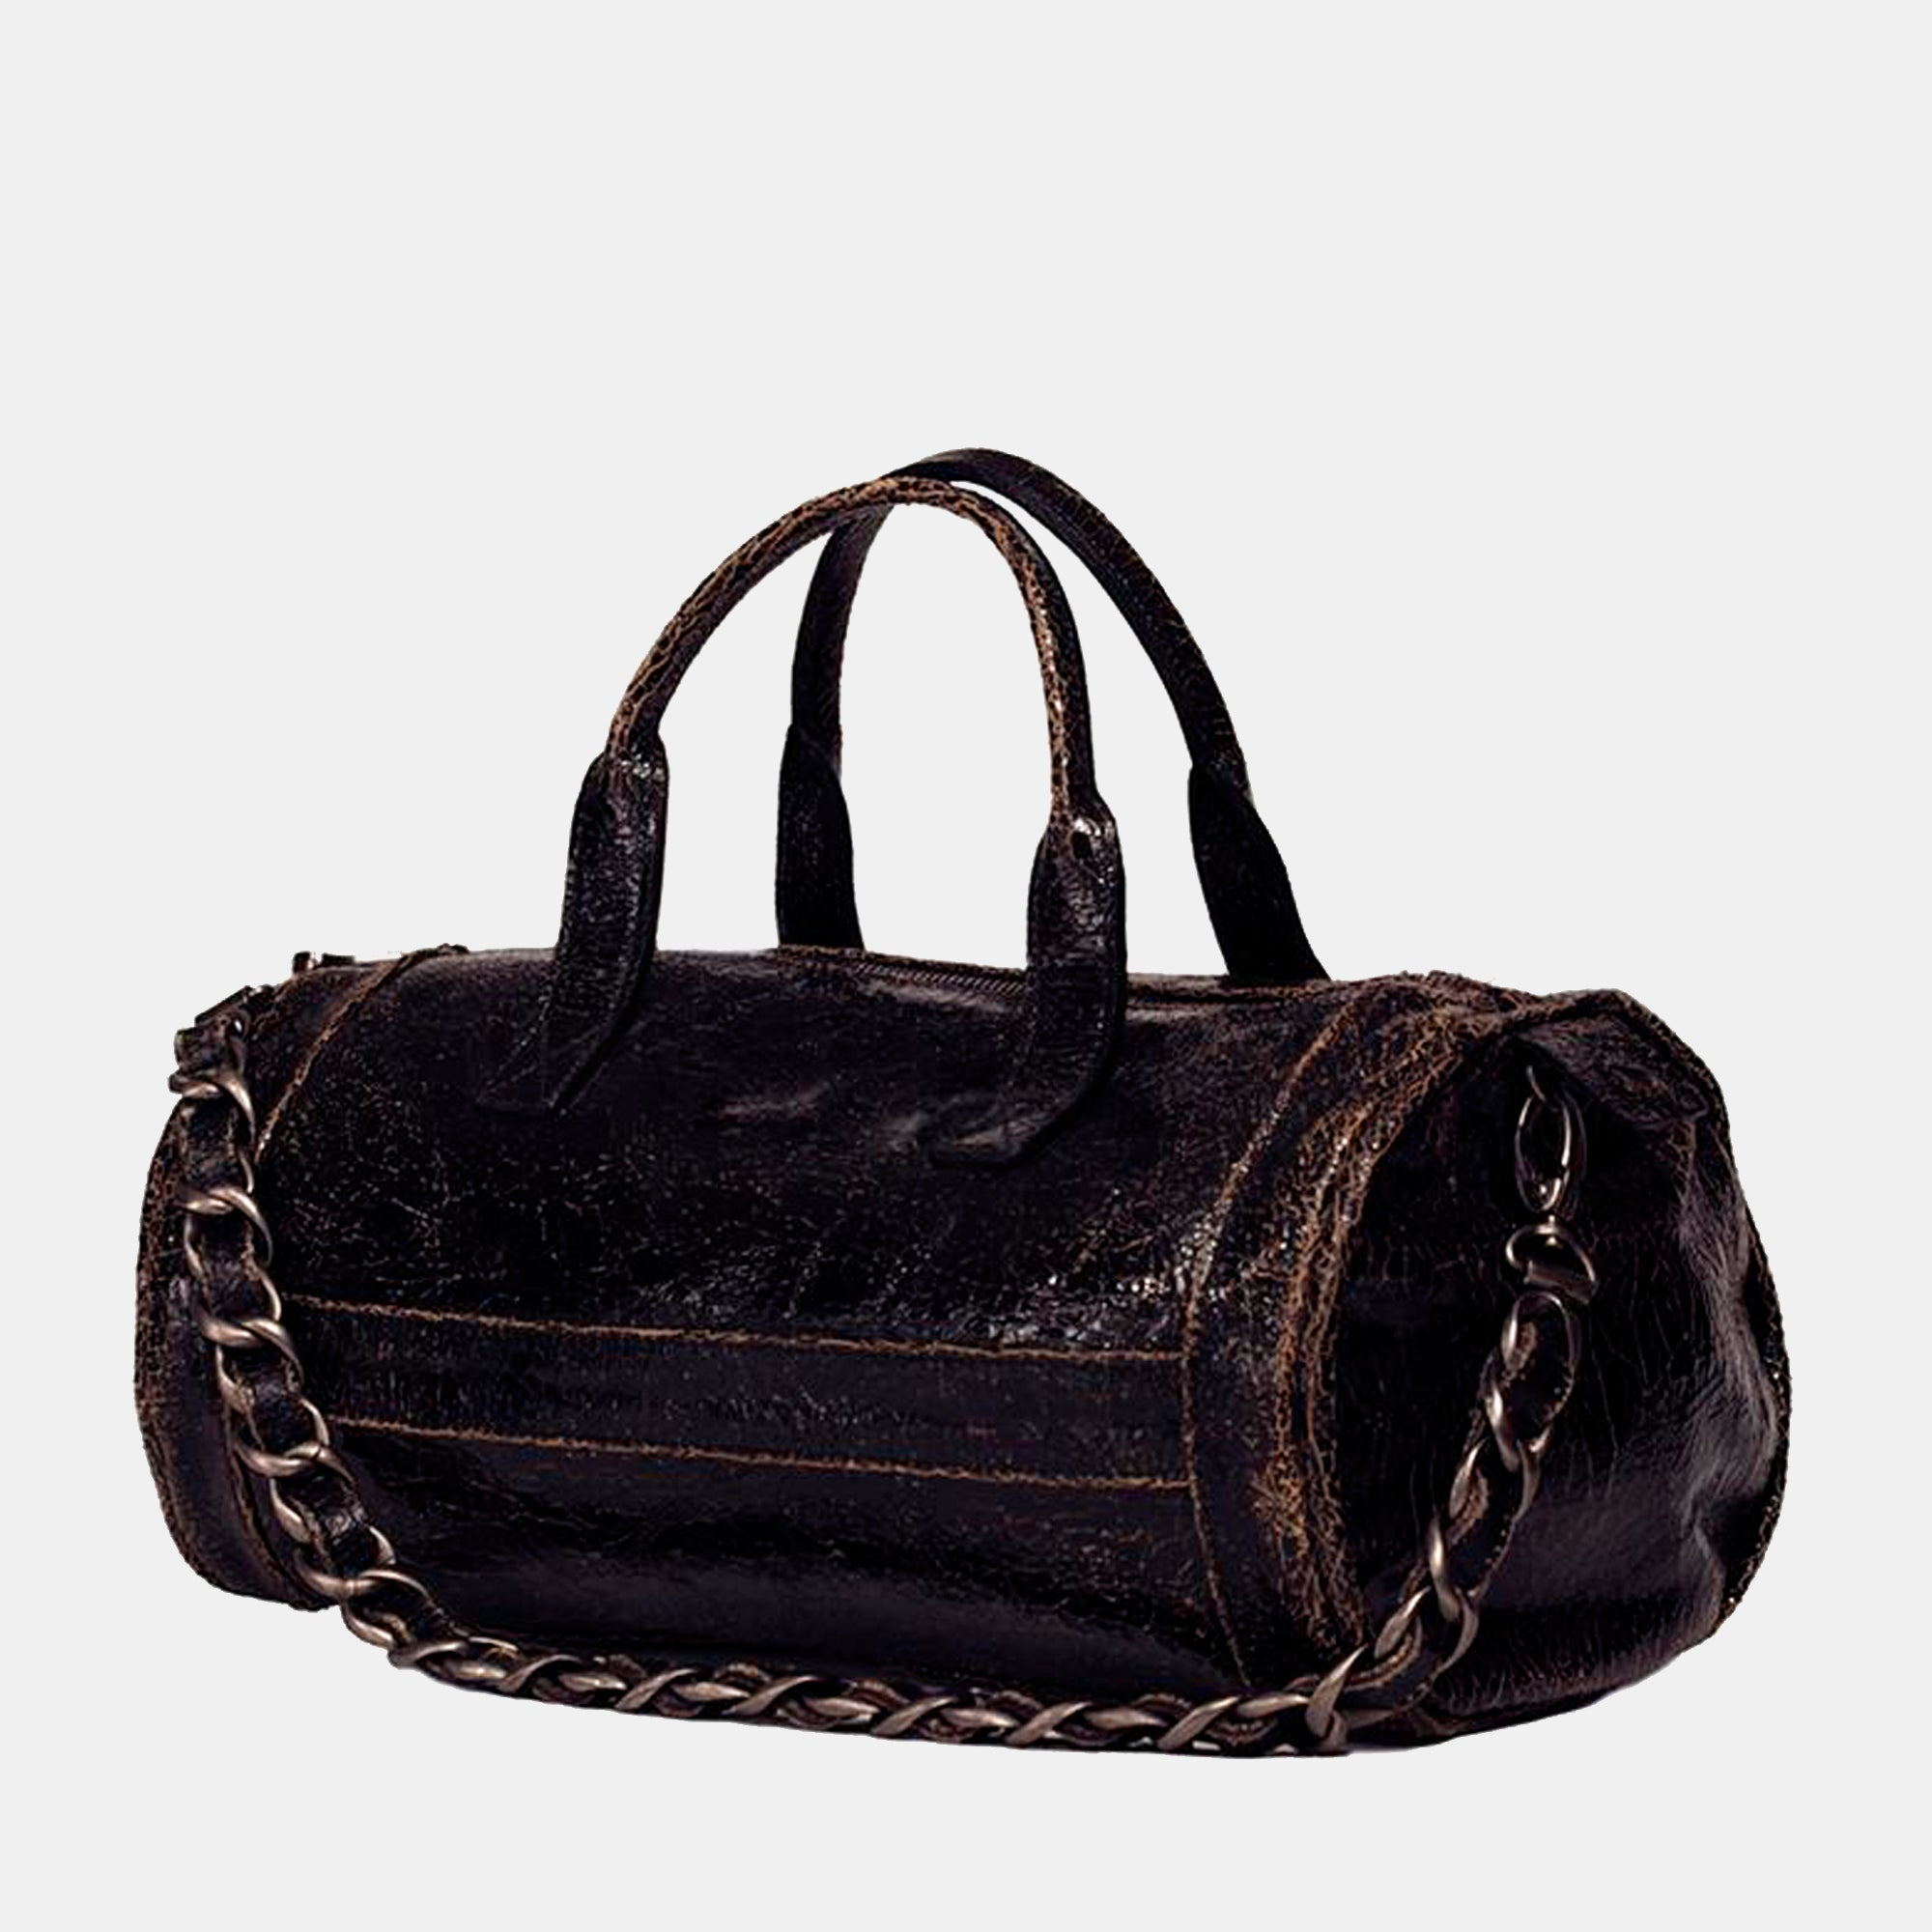 Mini Cigar Handbag - Black